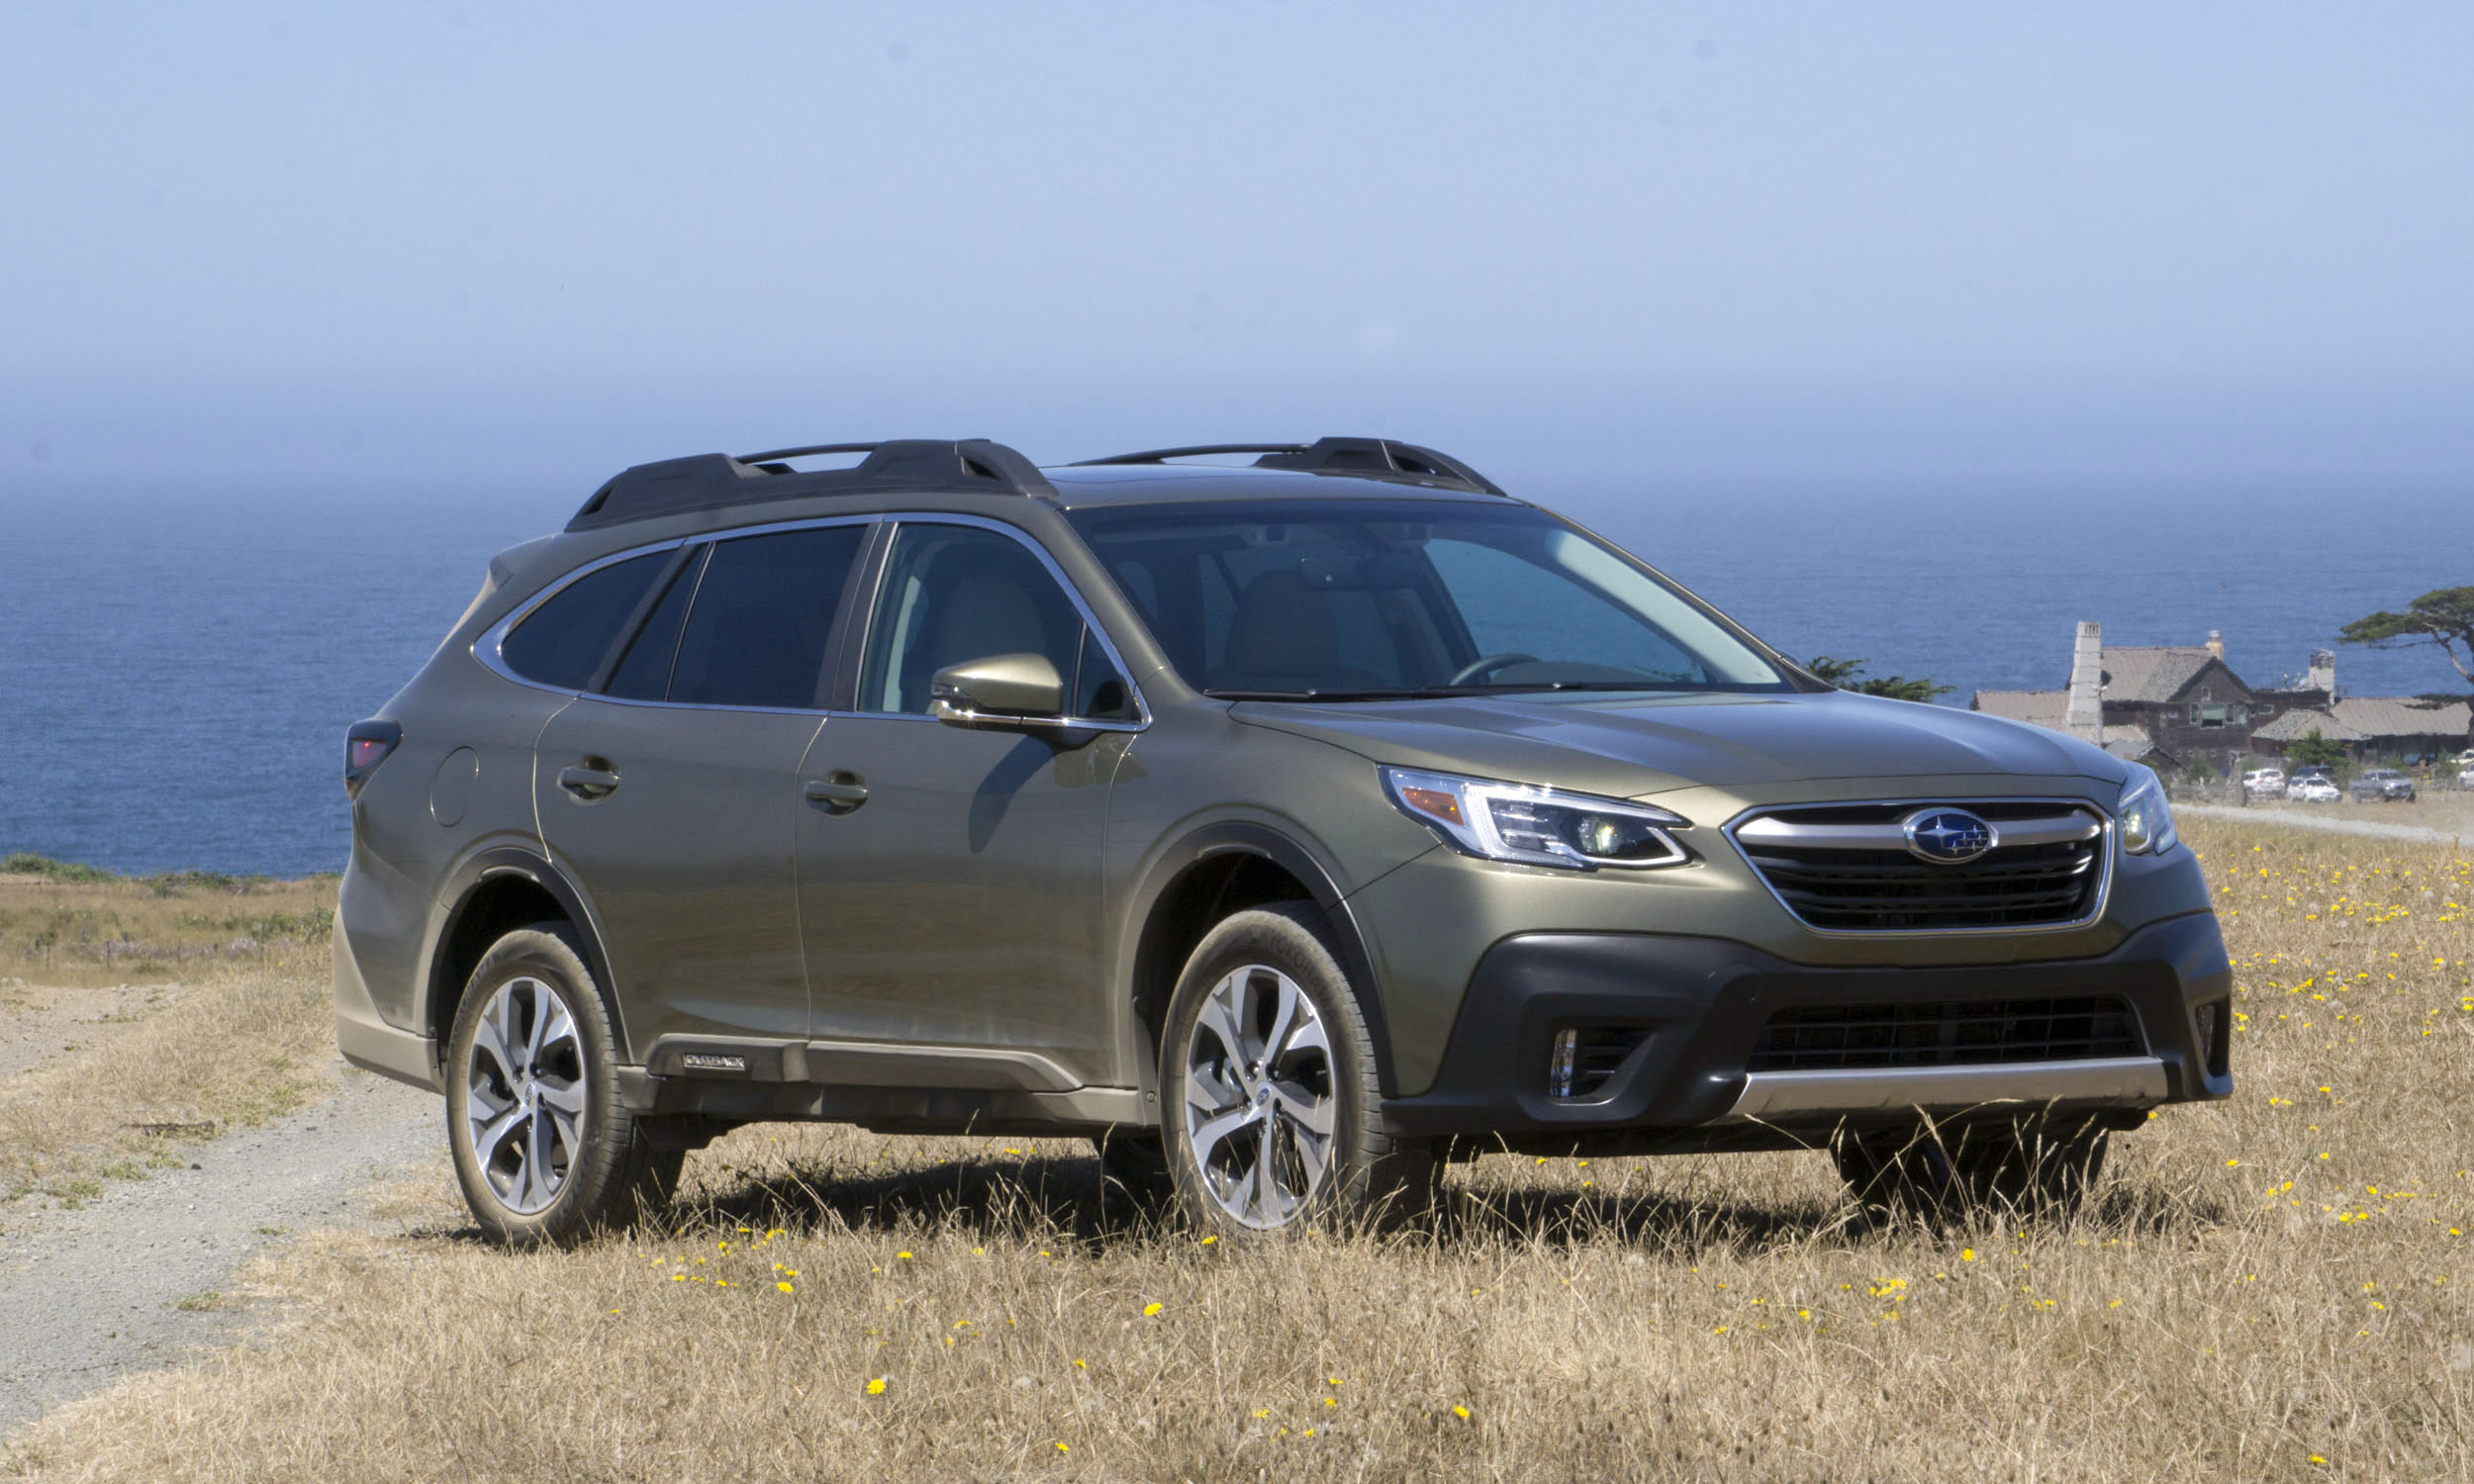 2020 Subaru Forester Xt Review.2020 Subaru Outback First Drive Review Autonxt